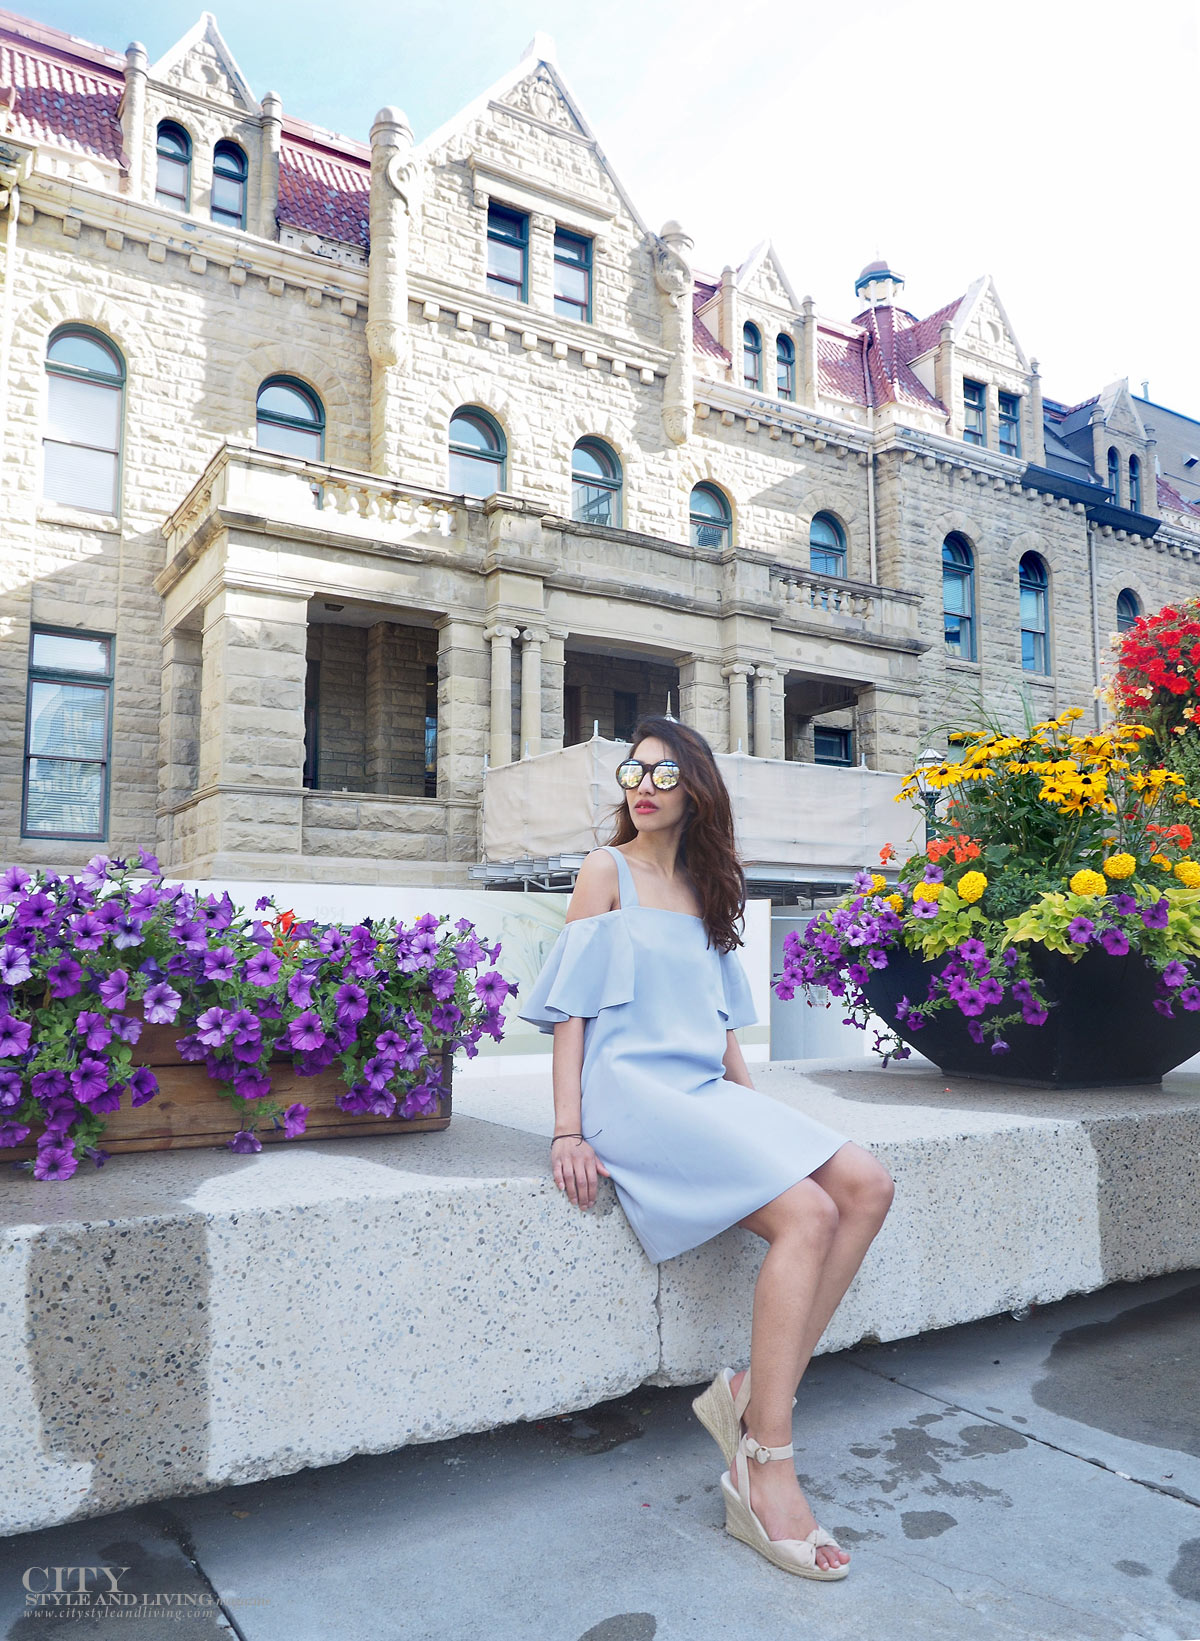 City STyle and Living The Editors Notebook style blogger Downtown Calgary colourful flowers blooming during summer wearing an off shoulder topshop dress and wedges